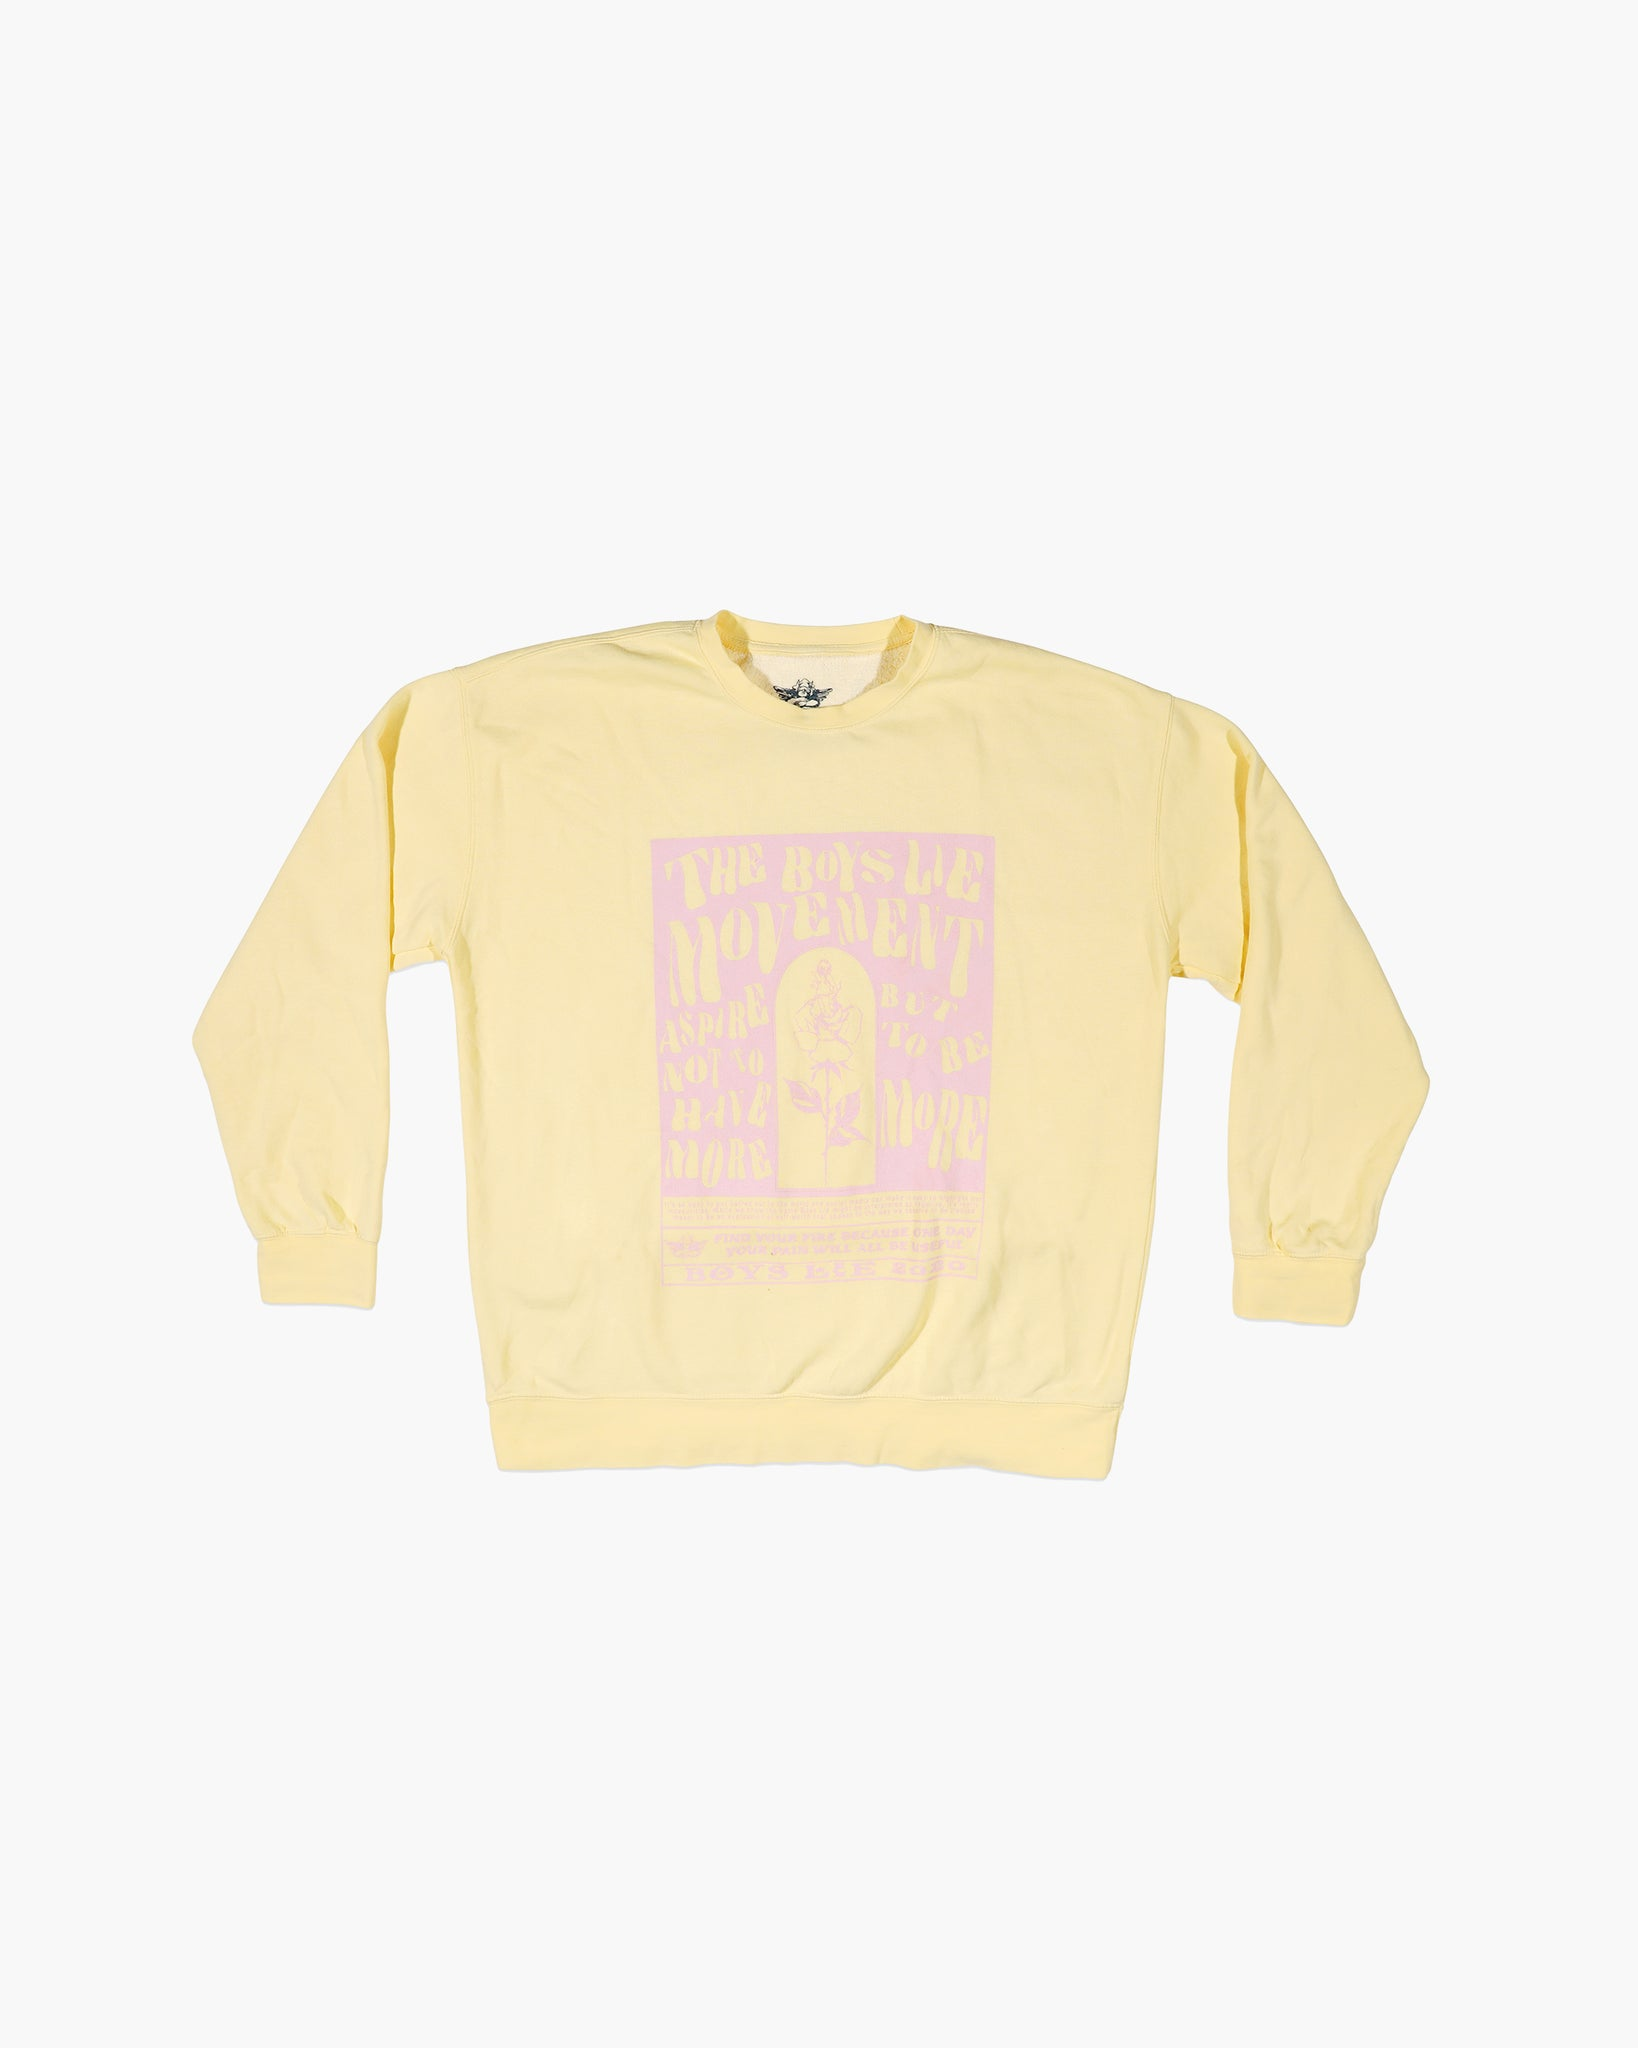 Butter Boys Lie Movement Y1 Crewneck